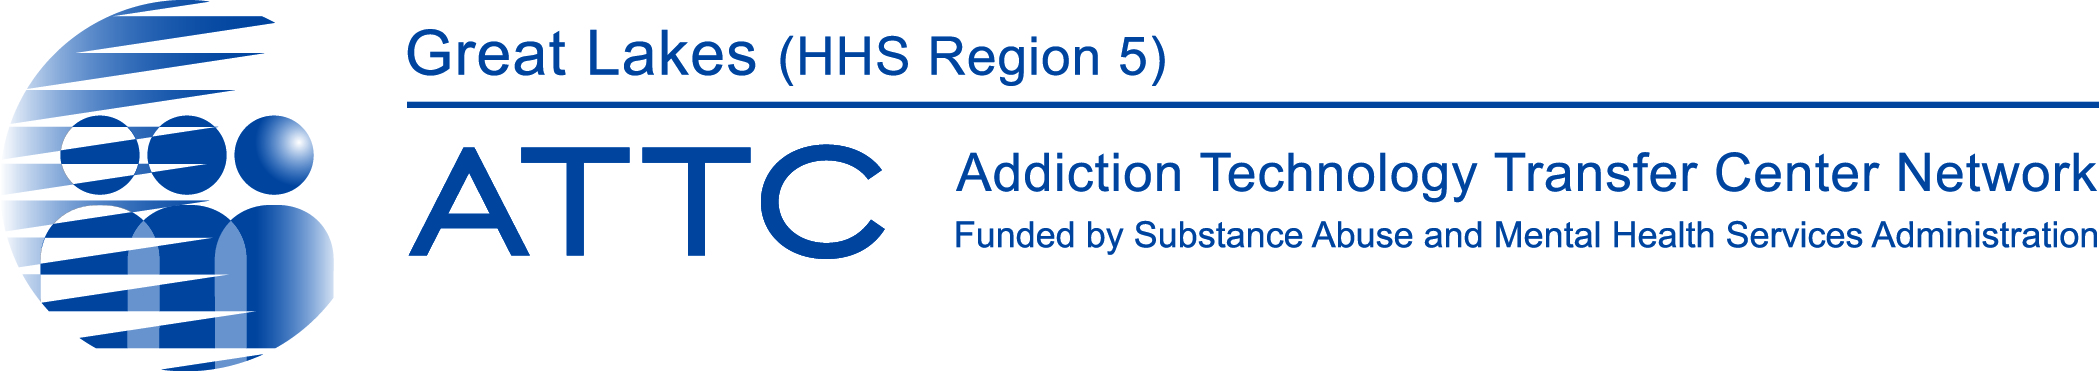 Great Lake (HHS Region 5) Addiction Technology Transfer Center logo